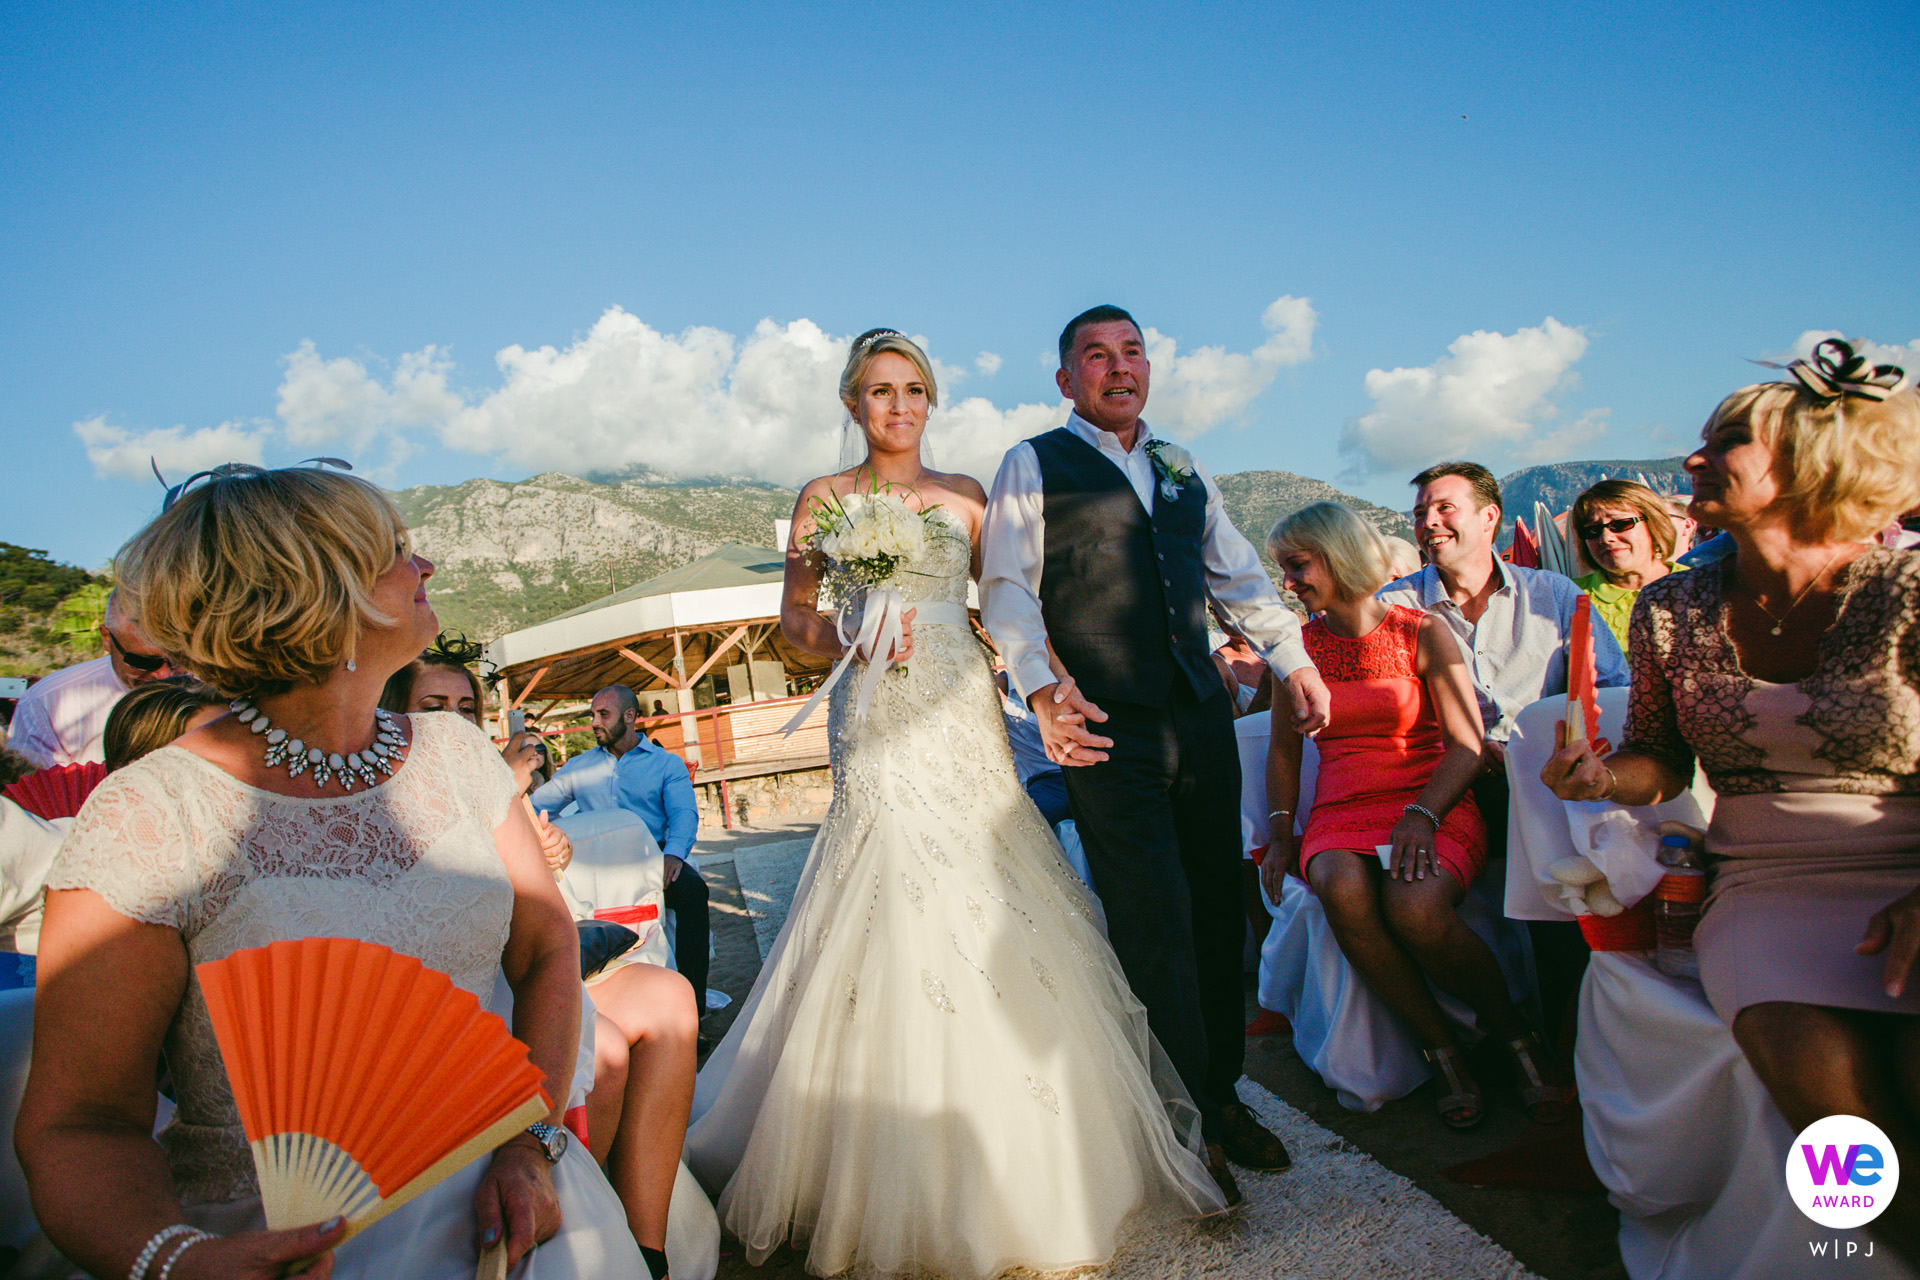 Sea Horse Beach Club, Oludeniz, Fethiye, Turkey Elopement Photos | The bride walks down the aisle with her father, surrounded on either side by their guests